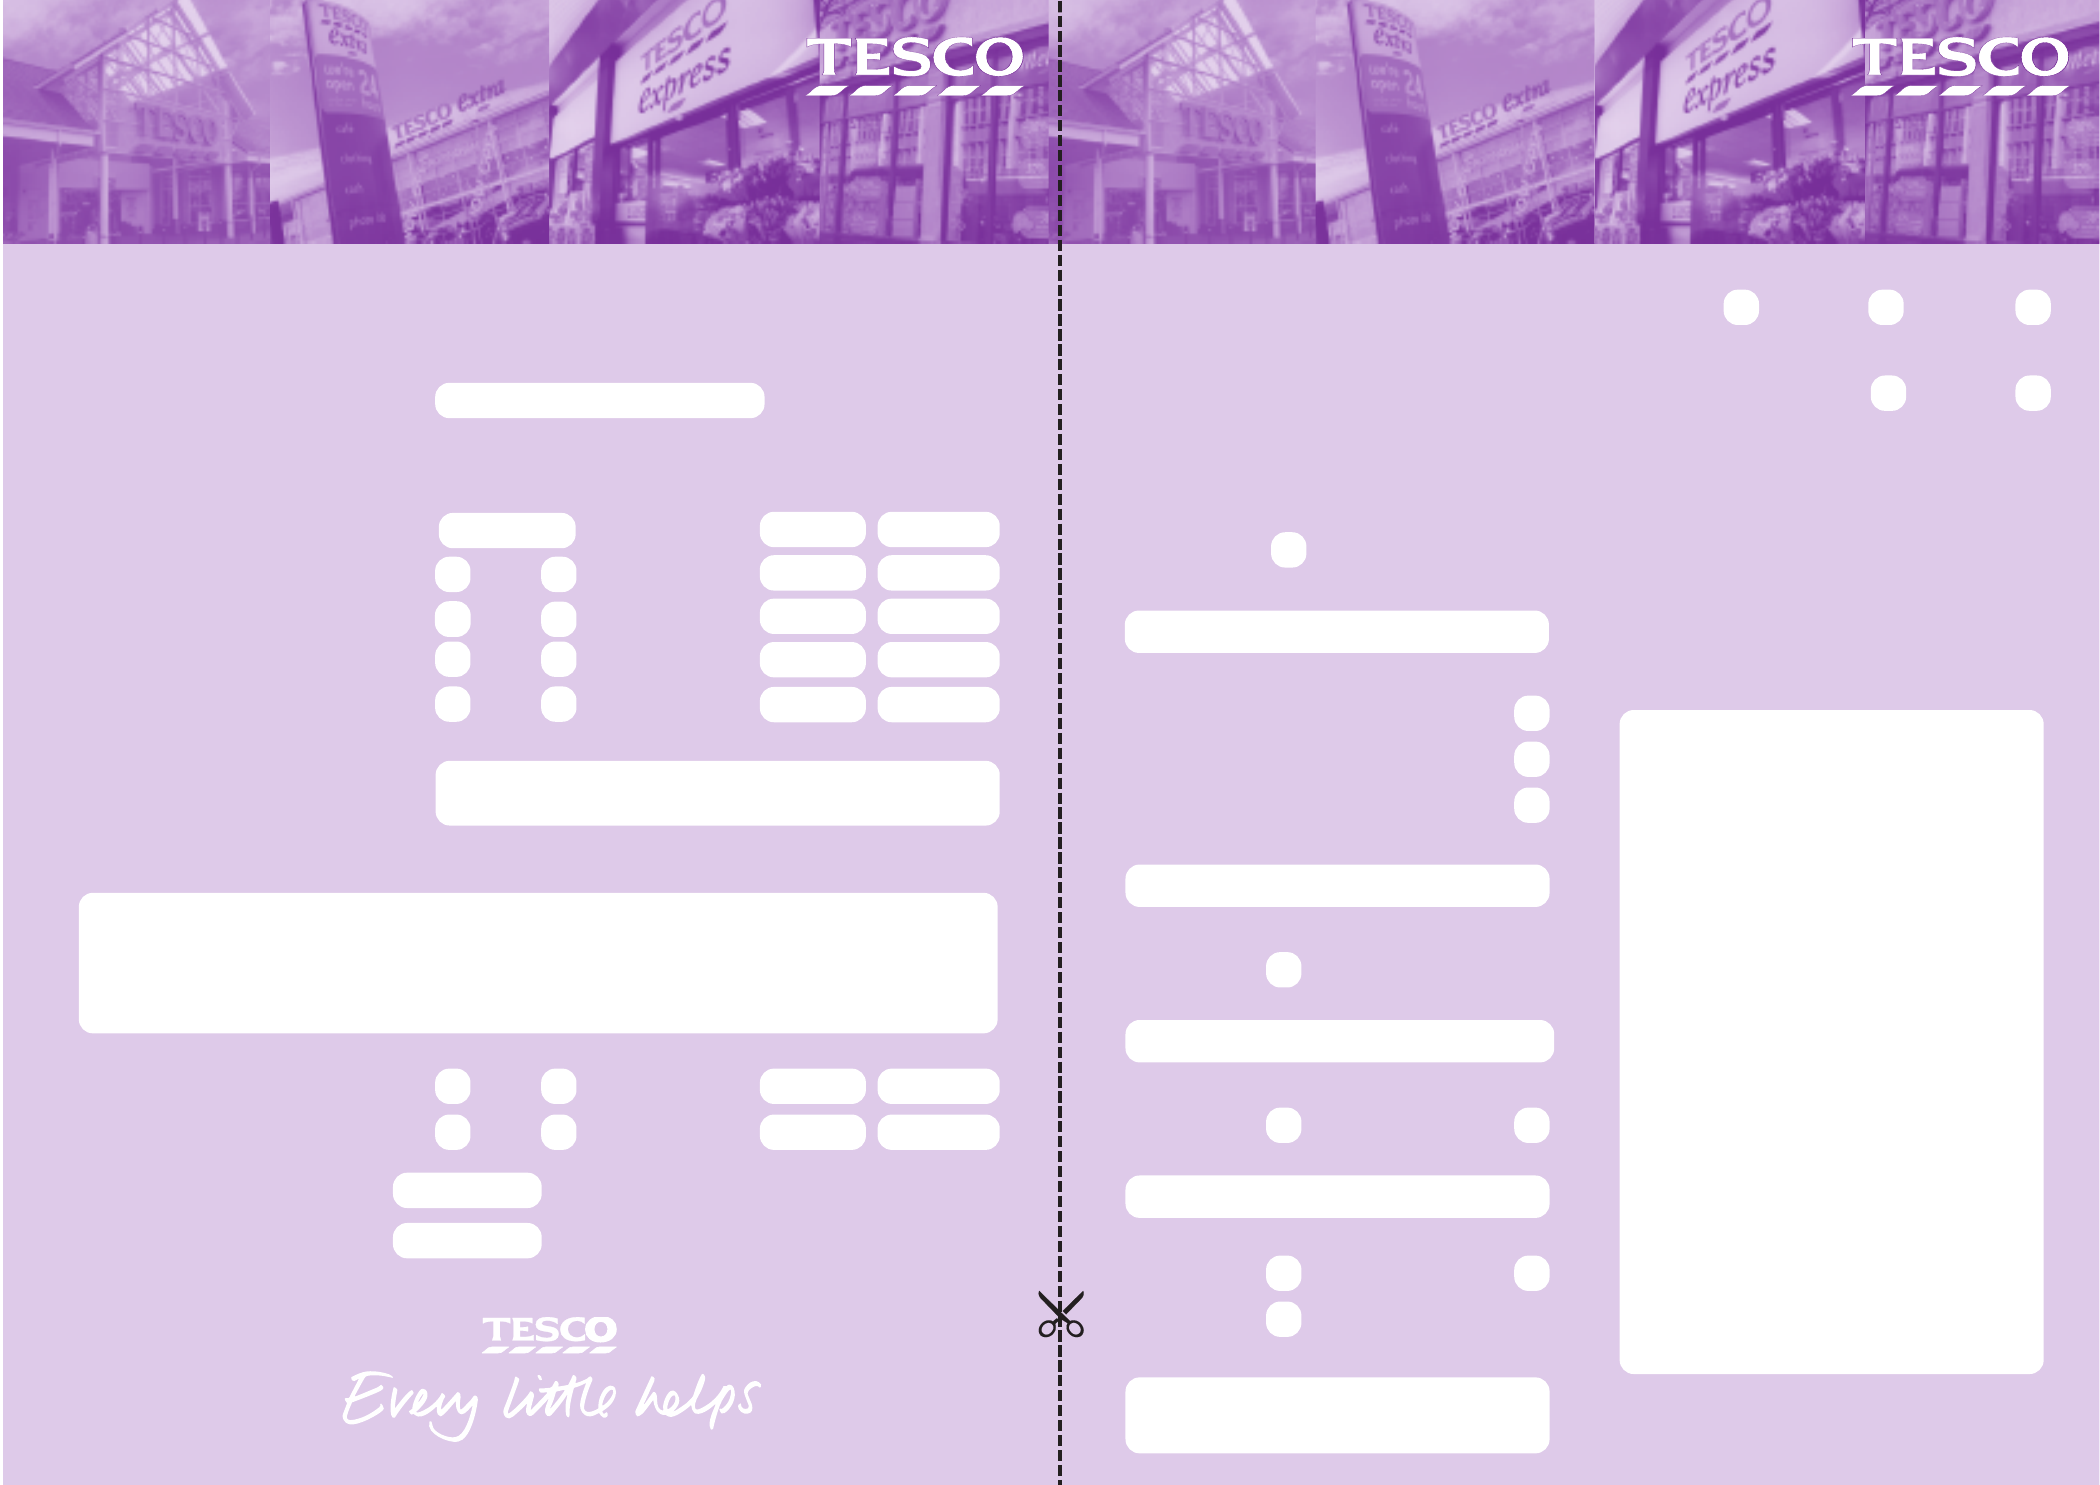 Tesco job application form free download tesco job application form falaconquin